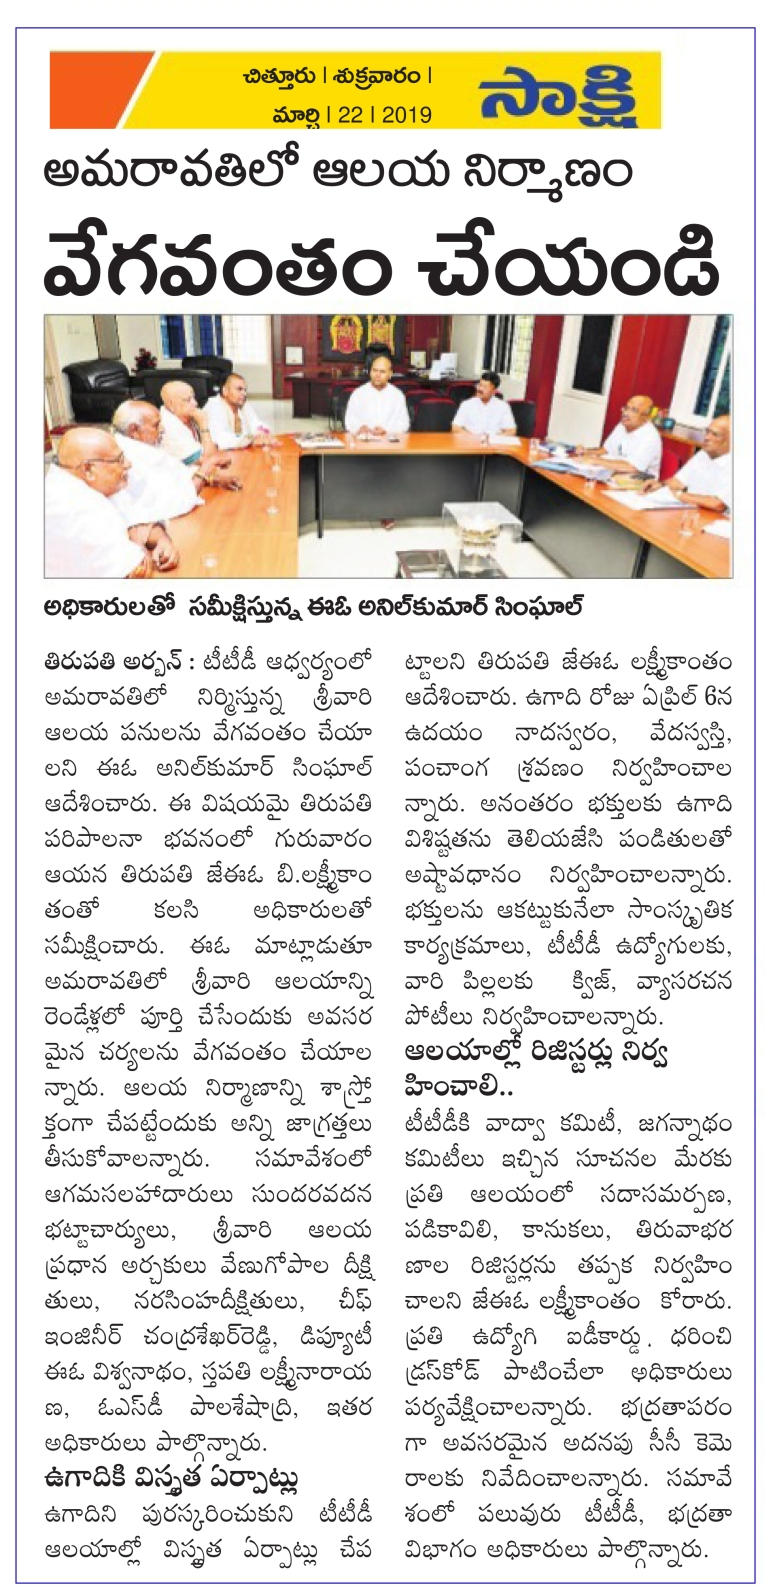 Reveiw Meeting about Temple in Amaravati Sakshi 22-03-2019